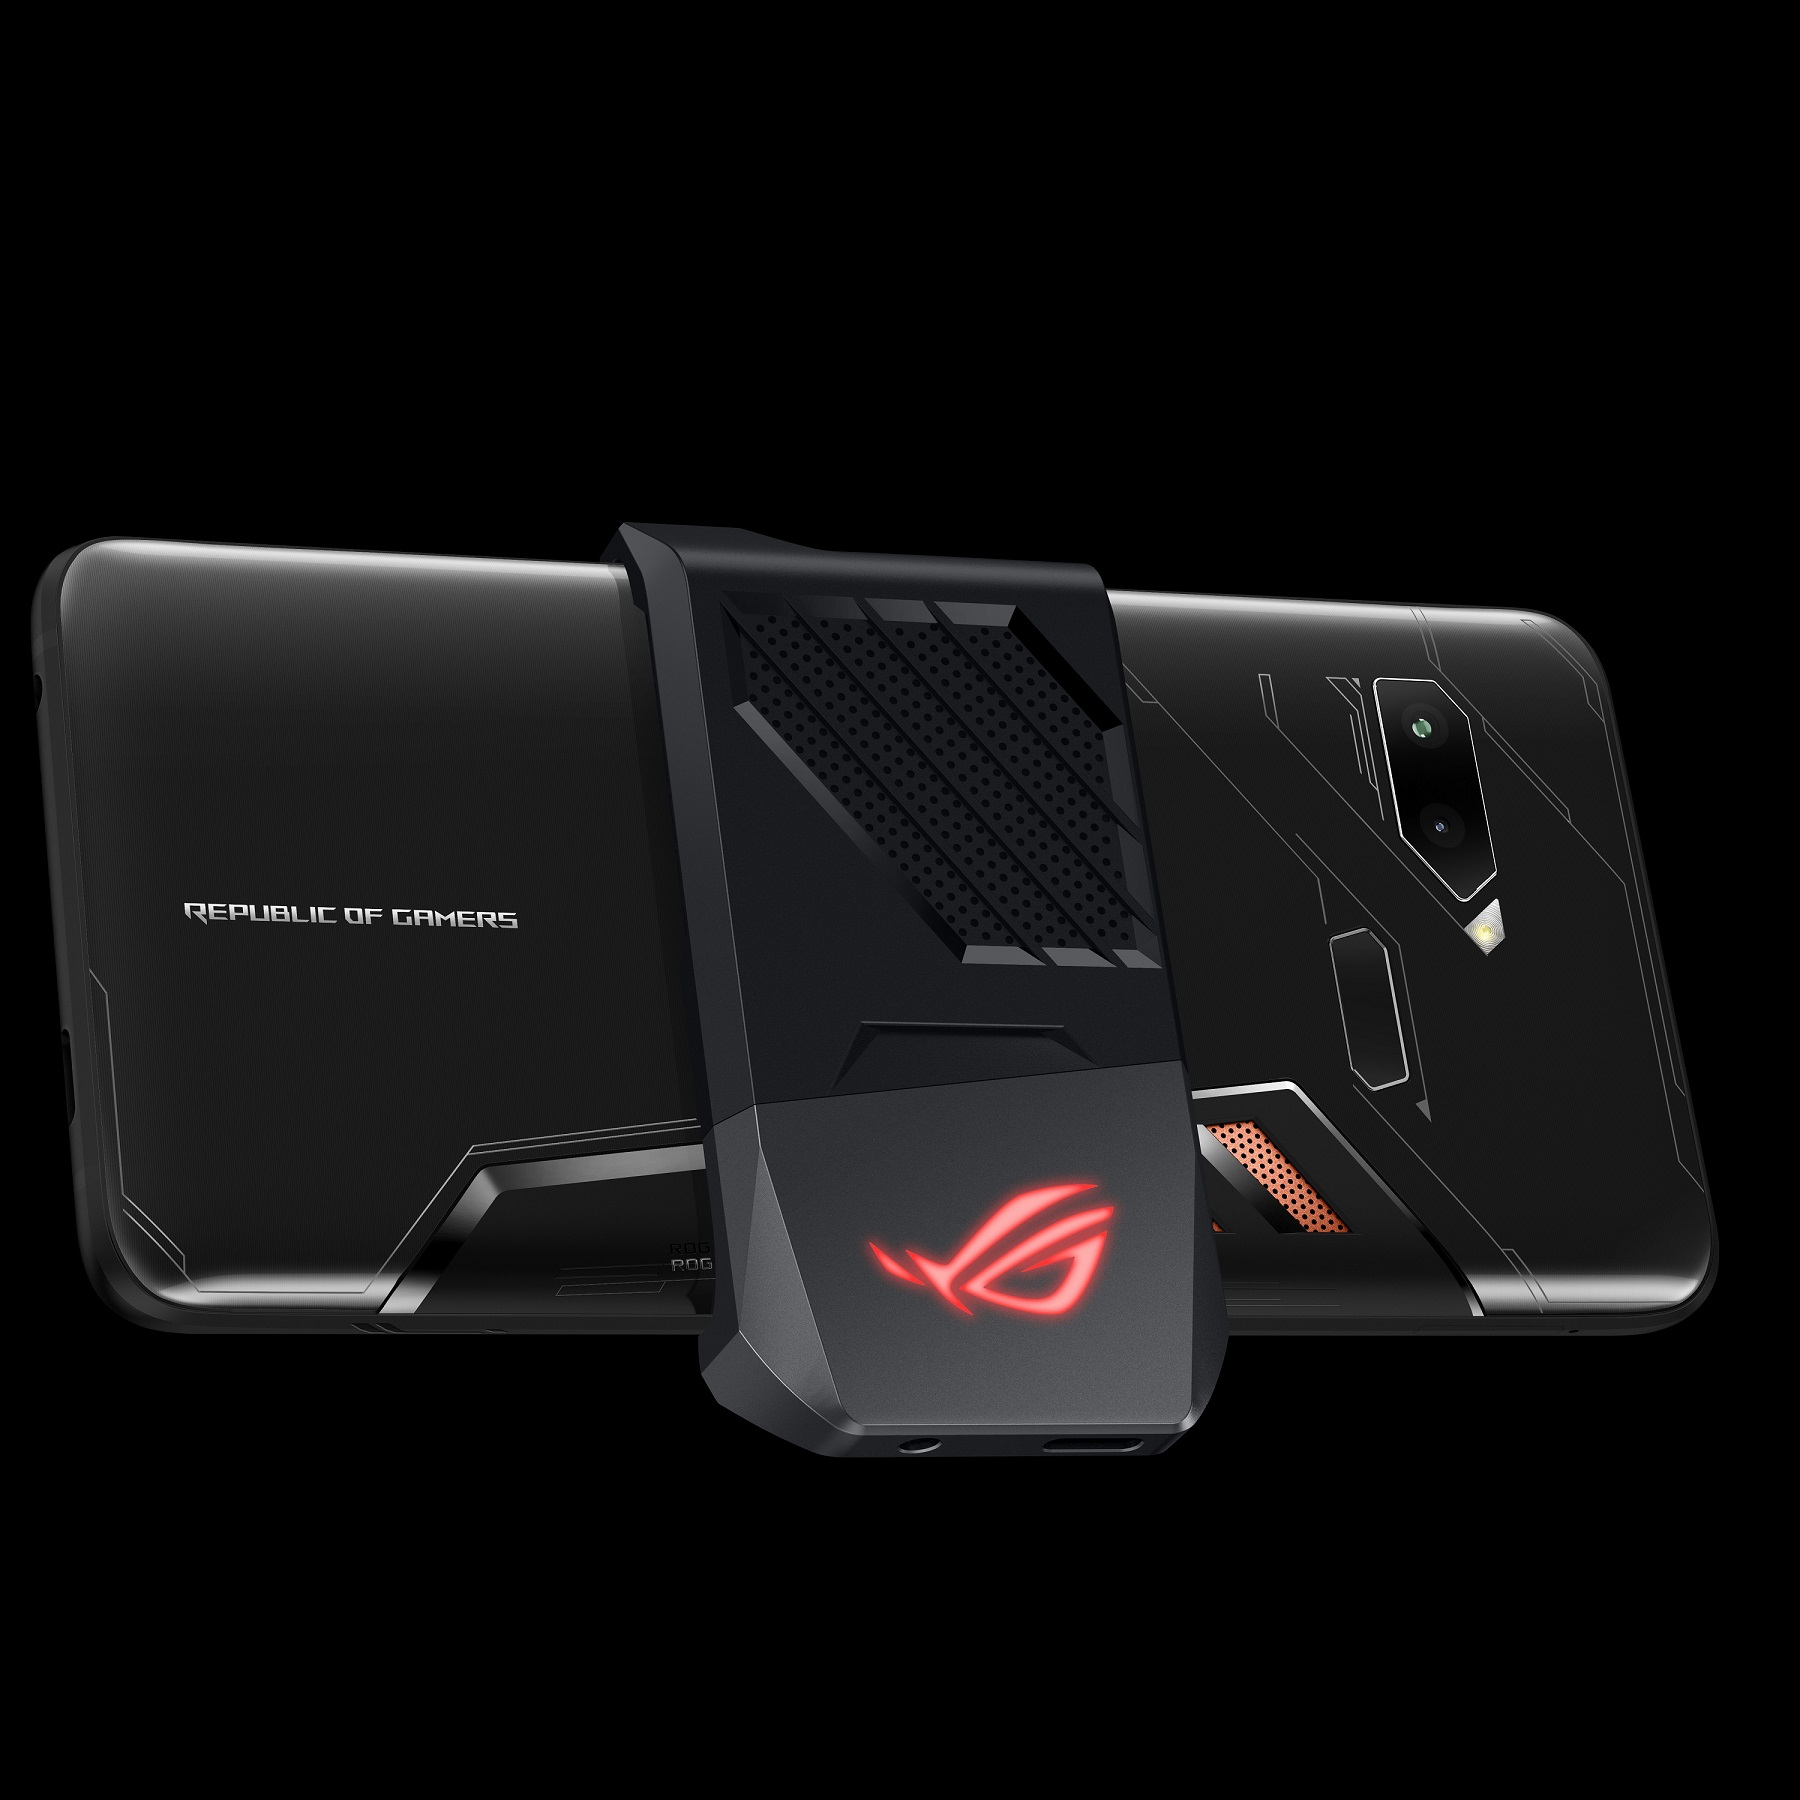 Smartphone, ROG Phone, Mobile Phones, 2018 Gamescom, , Asus, Republic of Gamers, Gamer, Computer hardware, Graphics Cards & Video Adapters, ROG Phone, gadget, technology, product, product, mobile phone, automotive design, electronic device, smartphone, hardware, font